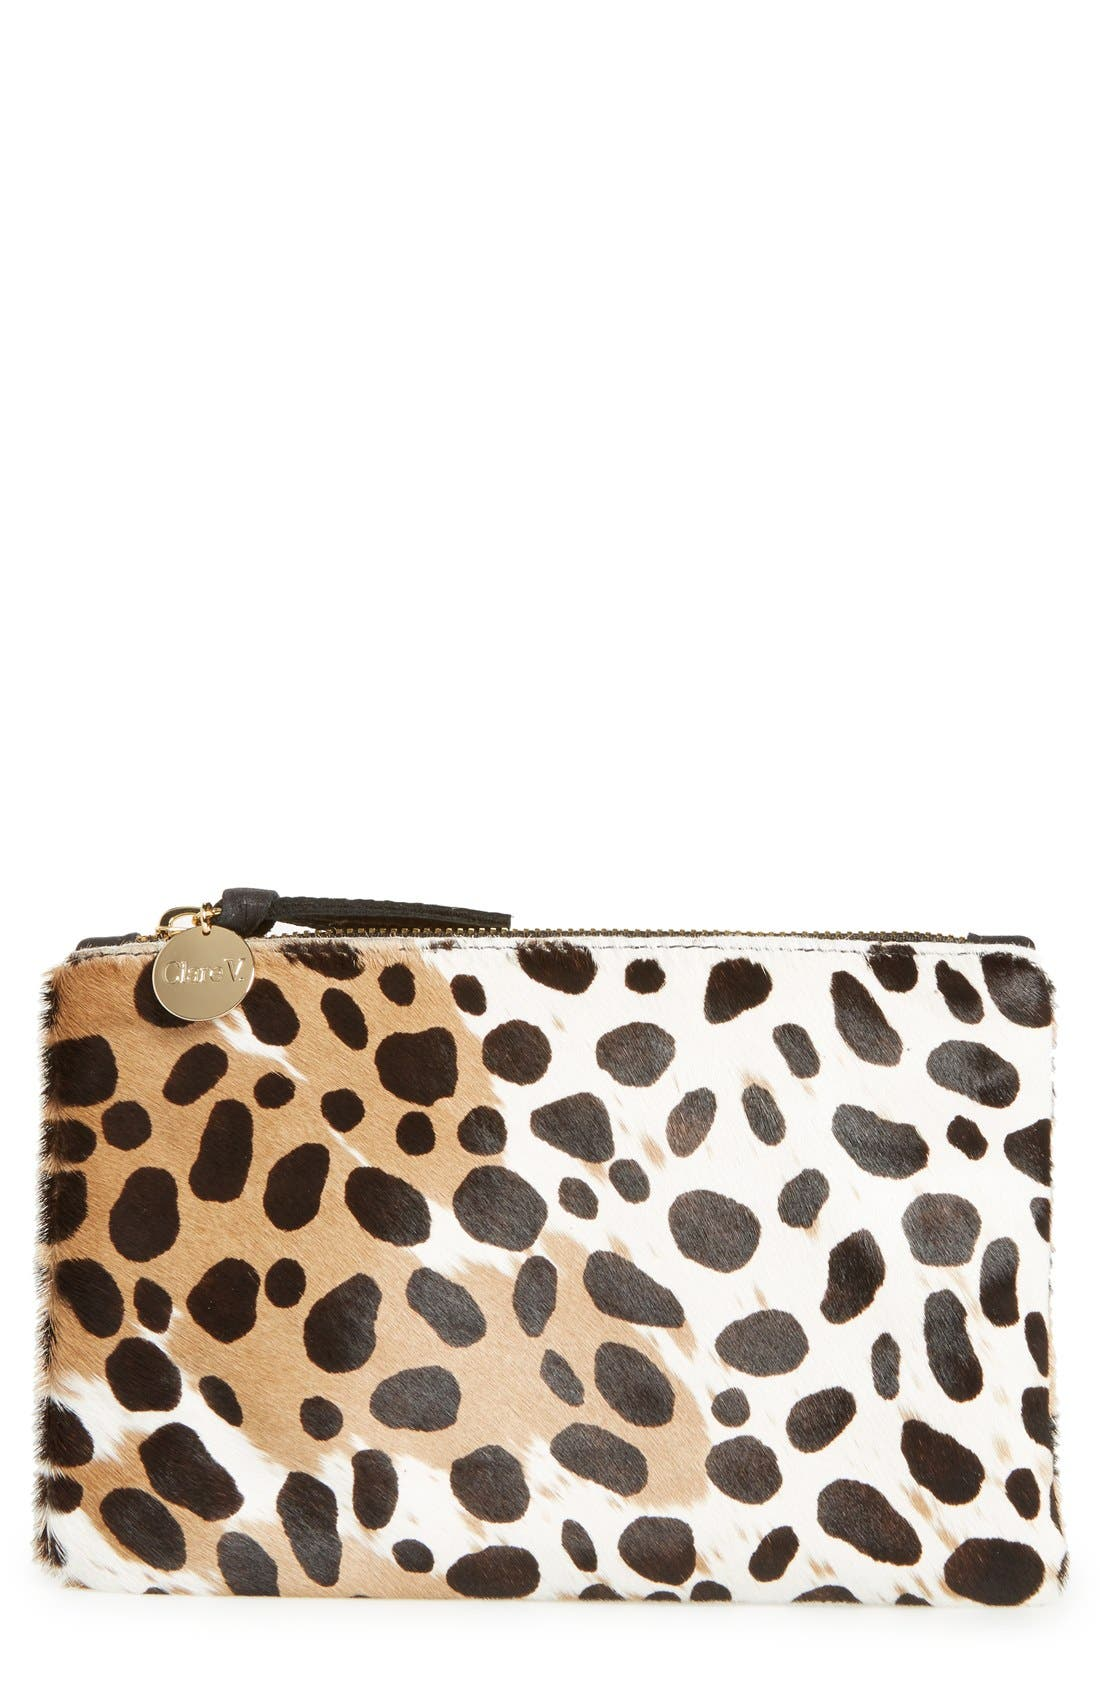 Clare V. 'Core' Leopard Print Genuine Calf Hair Pouch